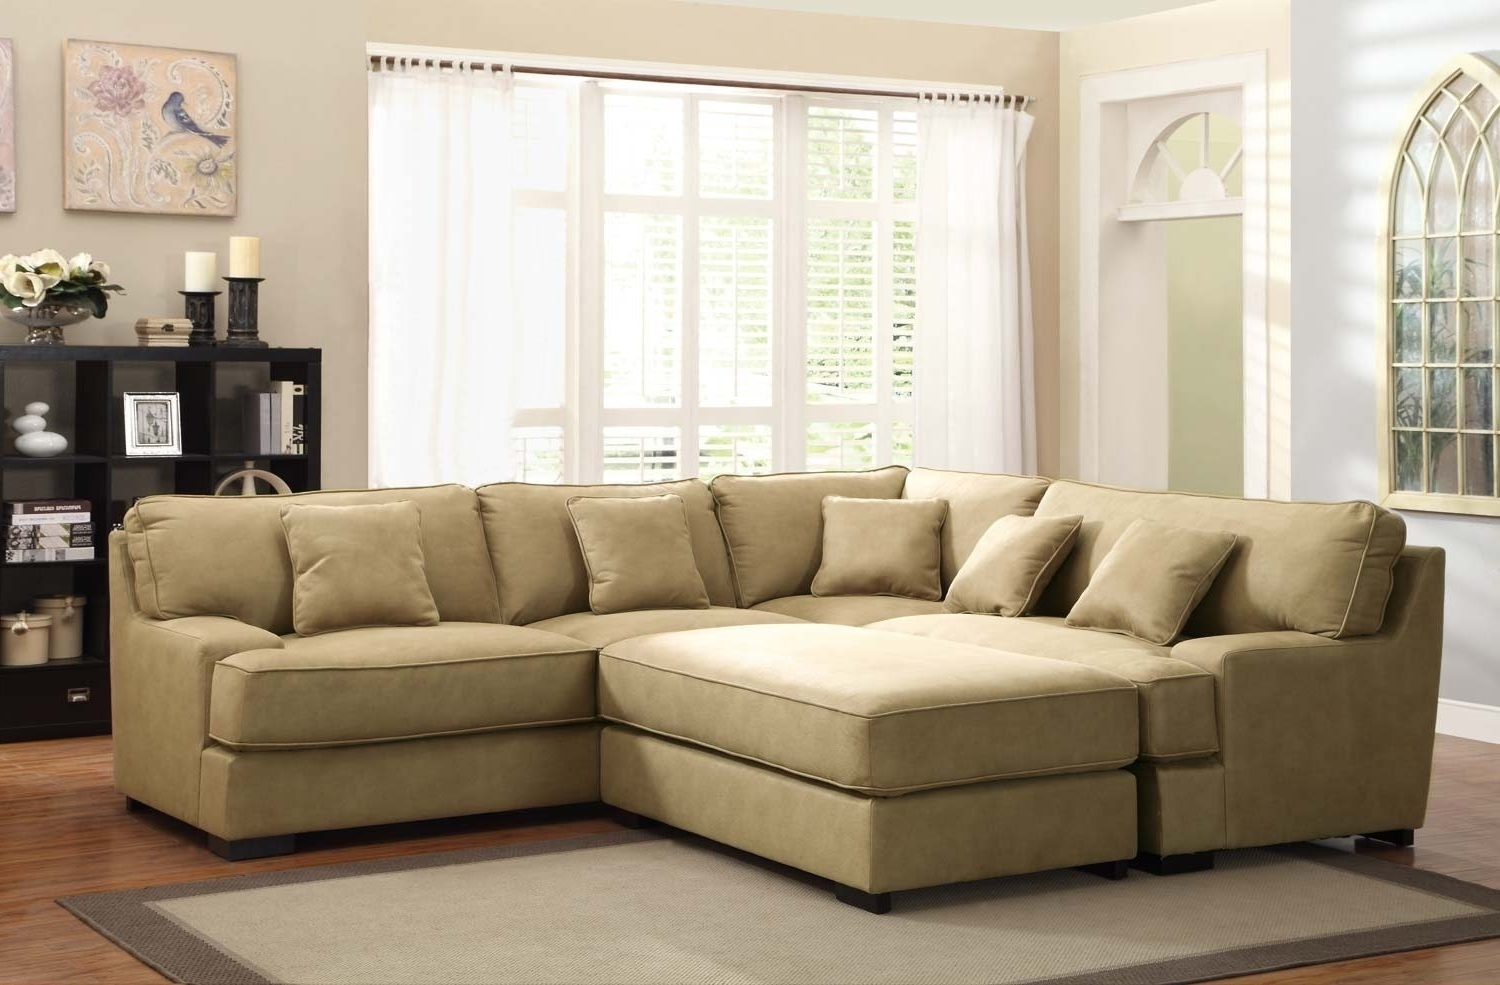 2019 Sofa : Sectional Sofa With Oversized Ottoman Oversized Sectional With Regard To Sectional Sofas With Oversized Ottoman (View 1 of 20)